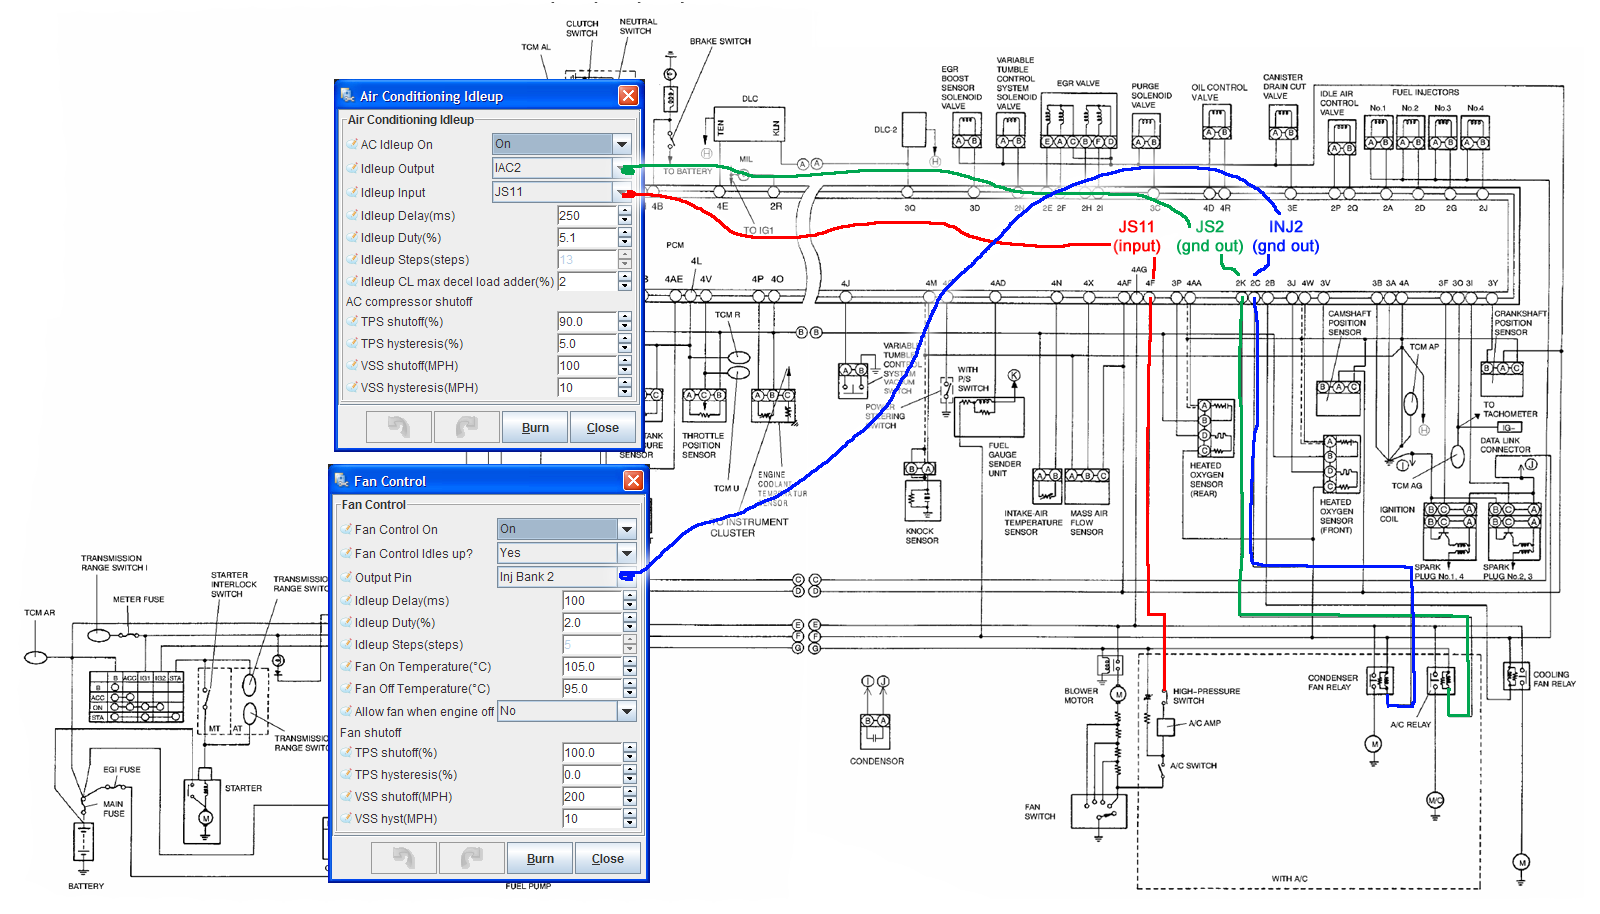 SATA Data Cable Connectors  26 Pinouts as well Arduino Mega 2560 R3 Pinout Diagram furthermore Samschem as well Simple Cpu Schematic likewise Connector atx pinout. on pc power supply diagram